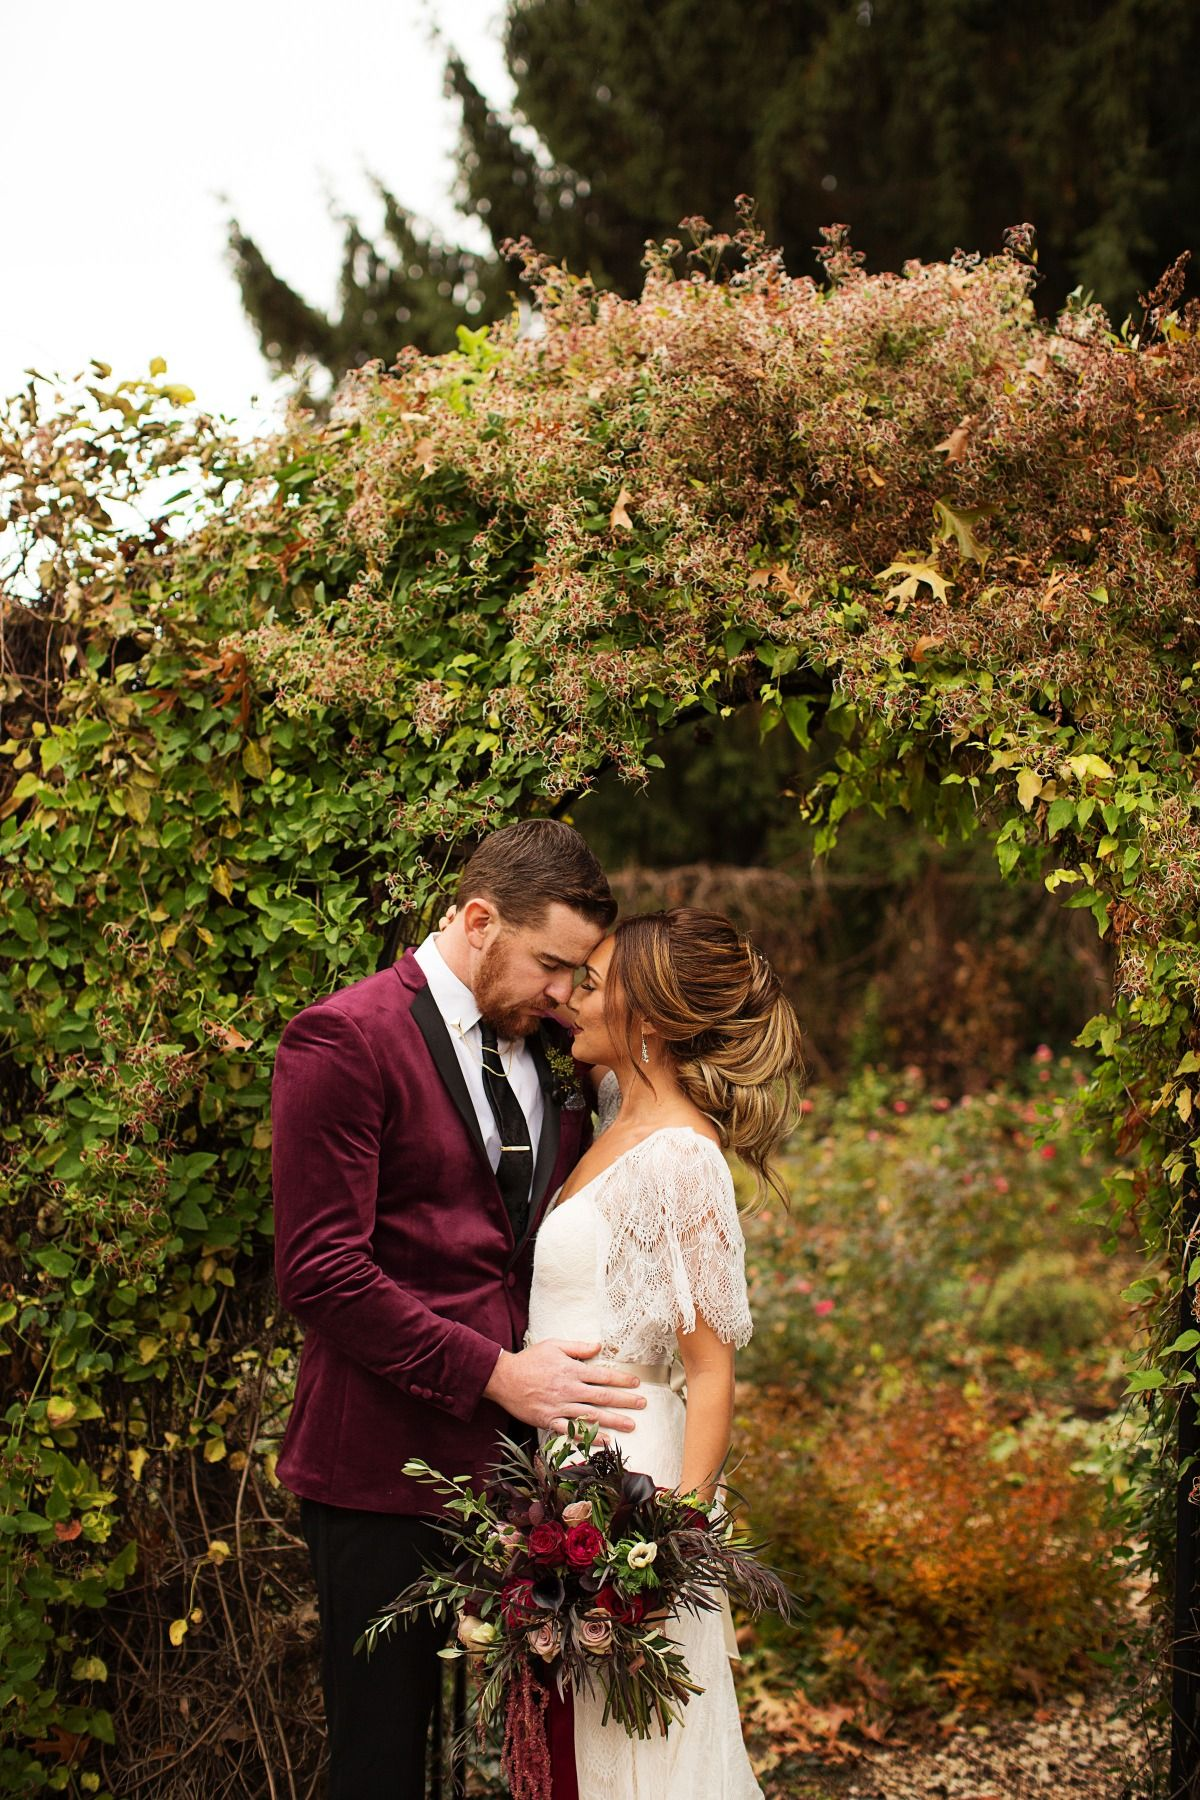 A Late Fall Wedding Inspiration With Vintage Vibes Wedding Inspiration Fall Outdoor Fall Wedding Fall Wedding Photos